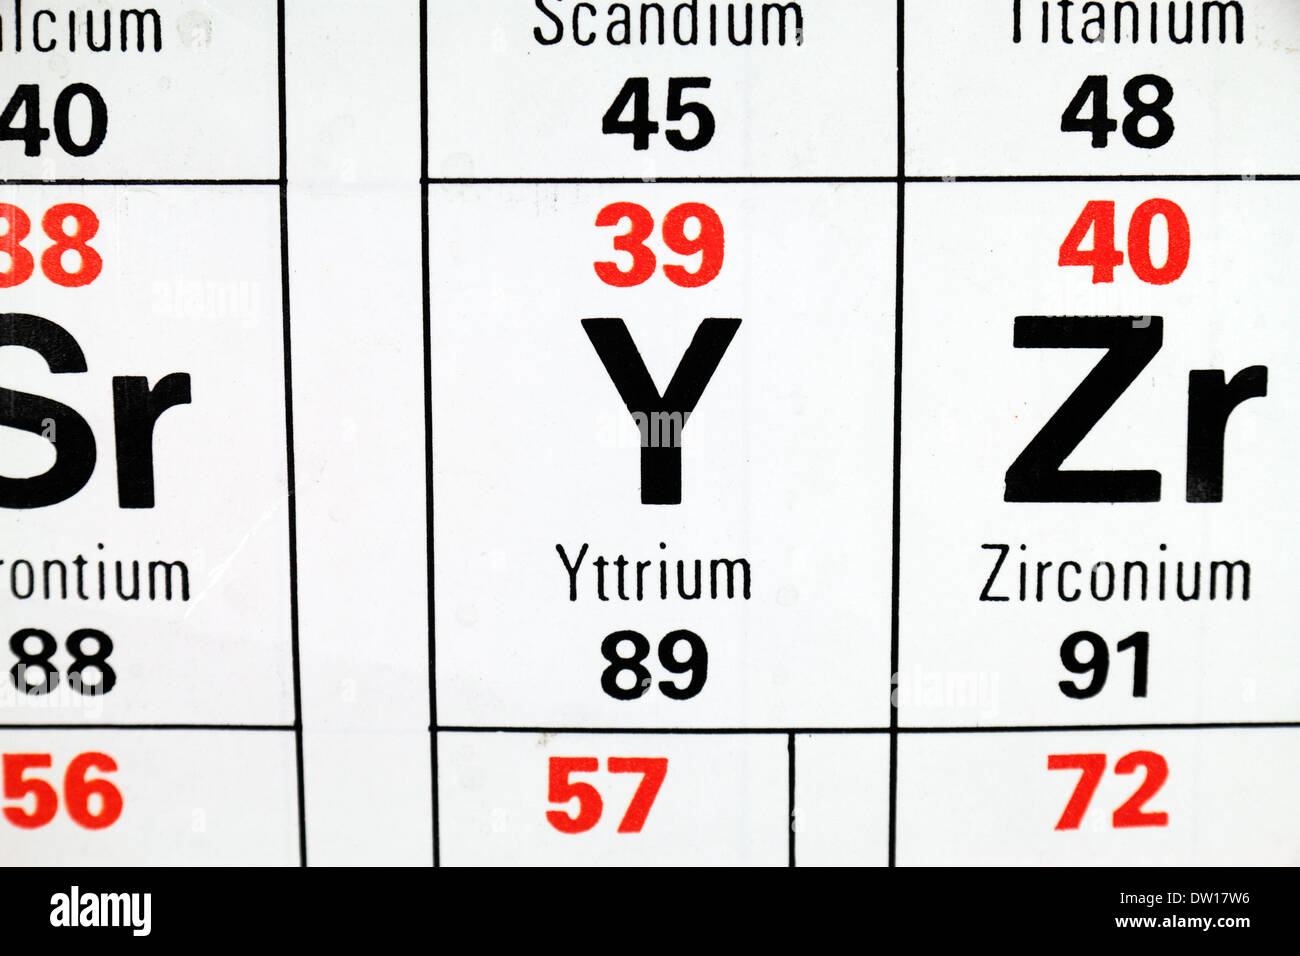 Periodic table ya images periodic table and sample with full periodic table of elements ya gallery periodic table and sample periodic table of elements ya choice urtaz Choice Image